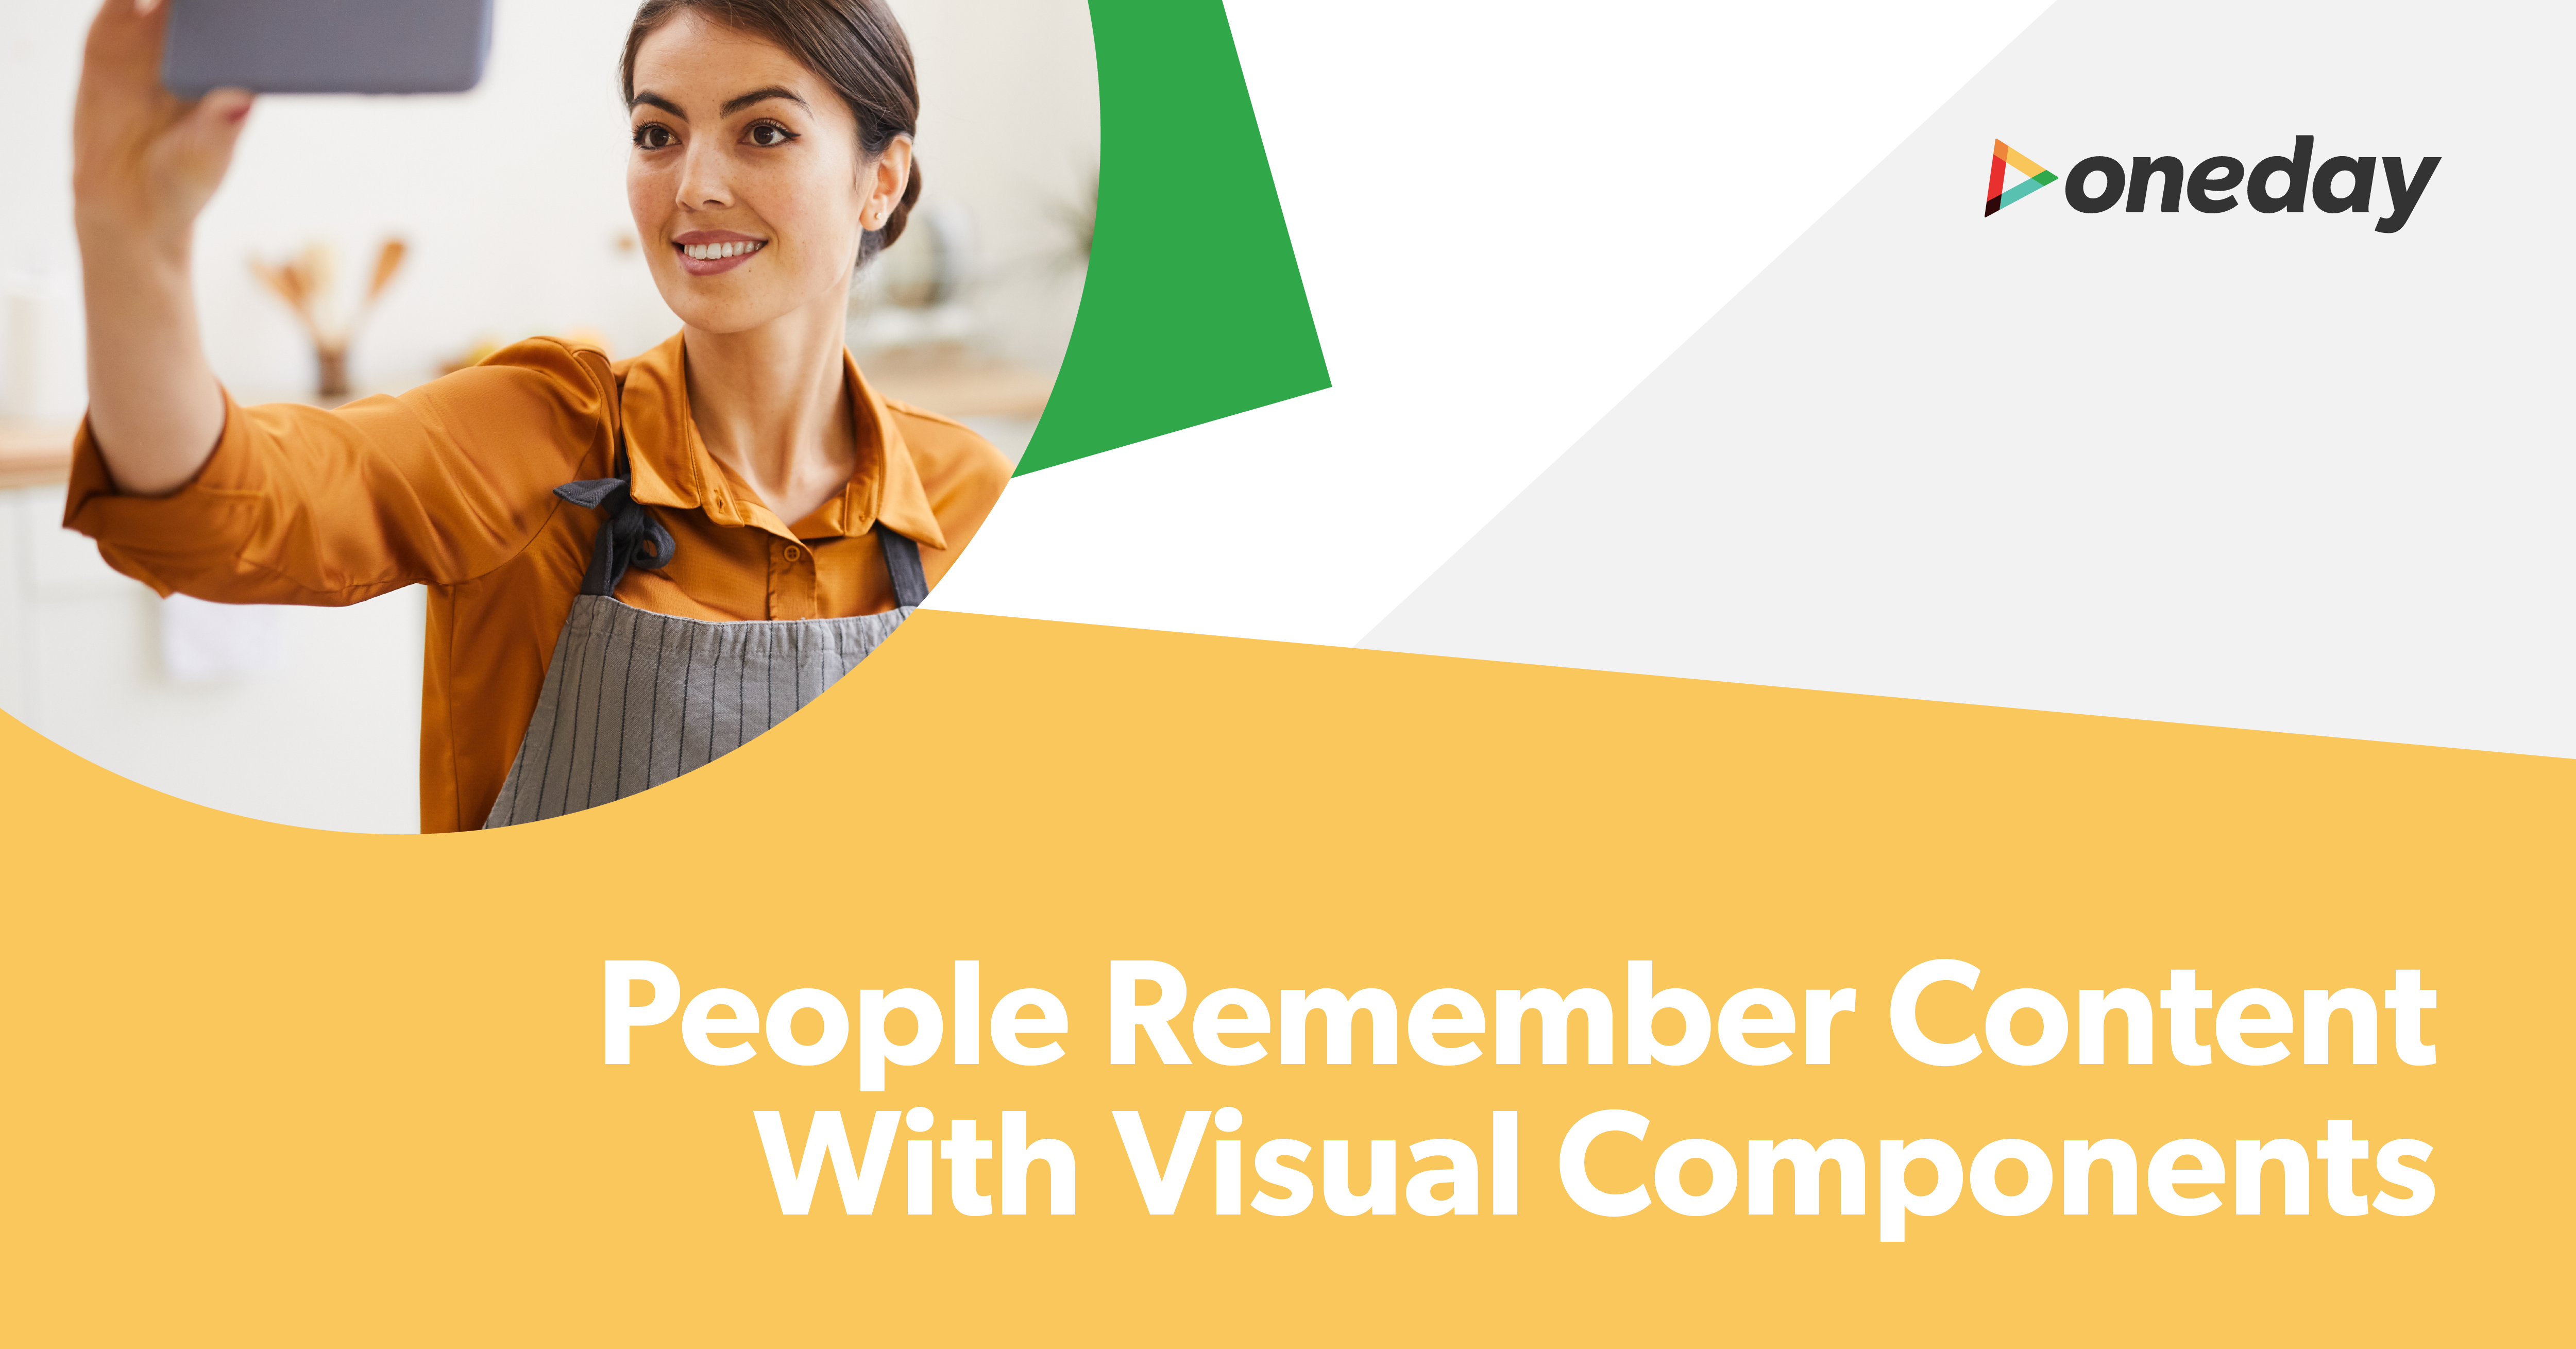 A look at how visuals grab and hold the audience's attention, driving engagement, brand awareness, and conversion rates along the way.